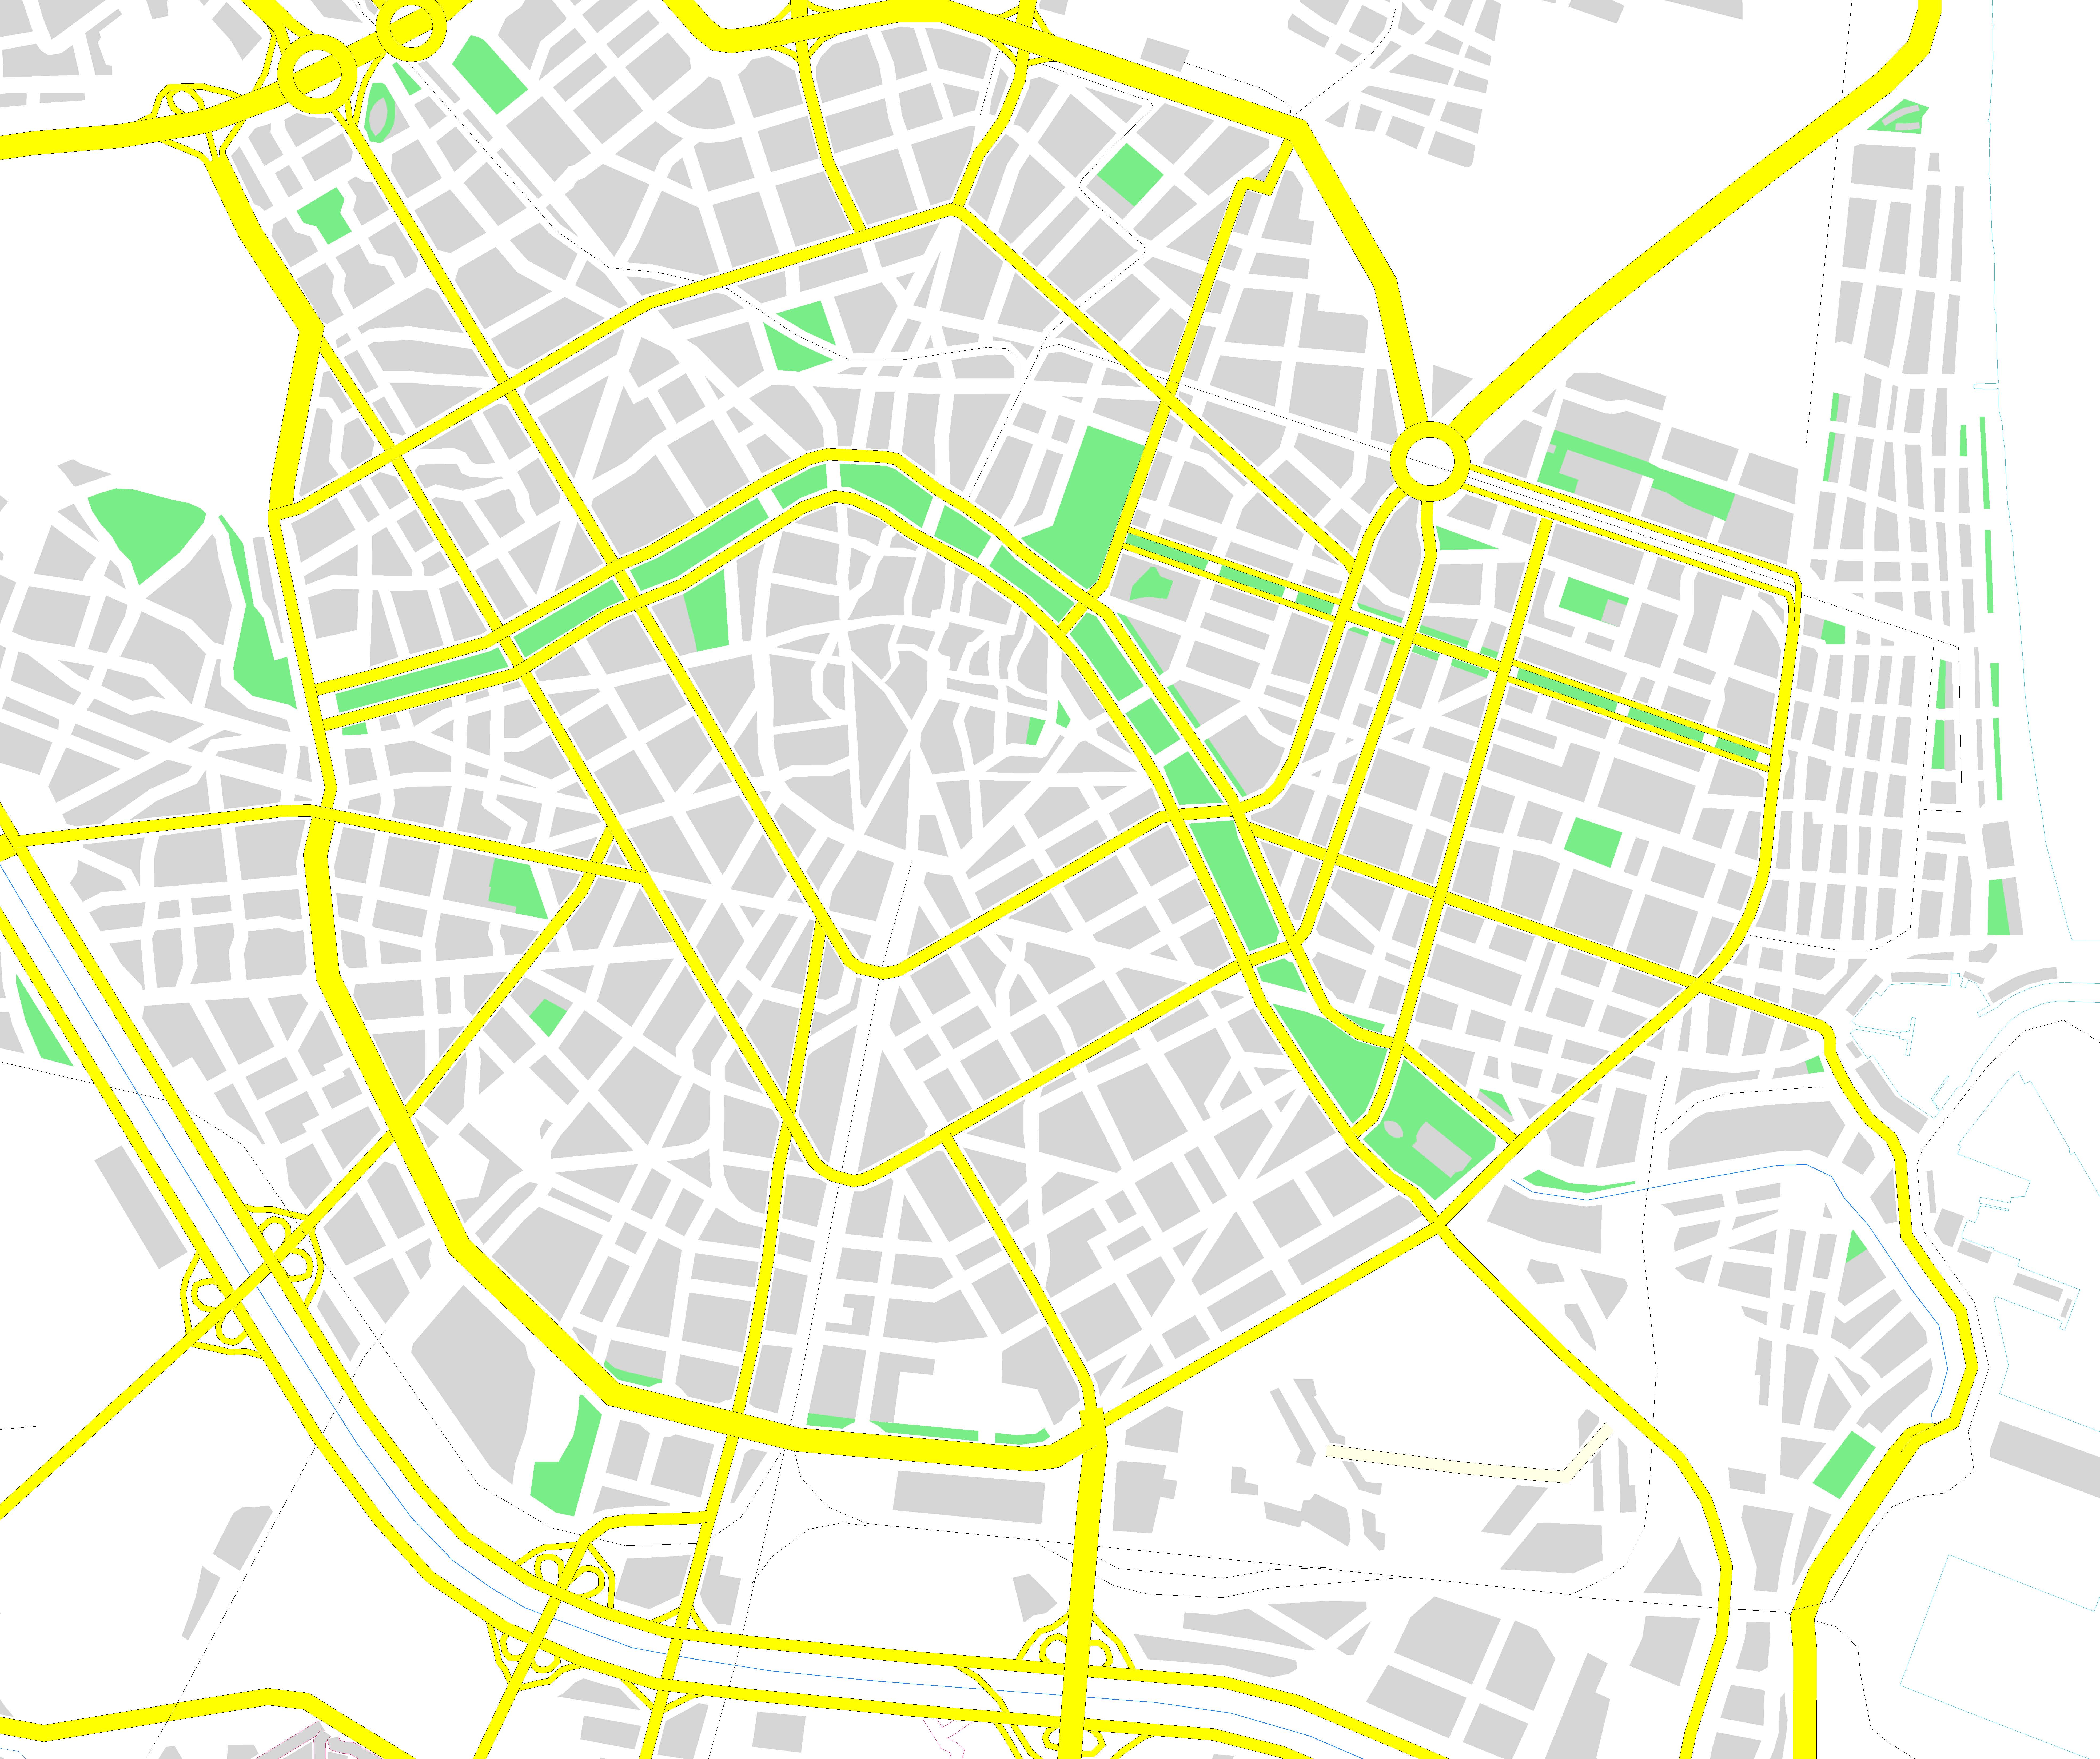 City map of Valencia 2008